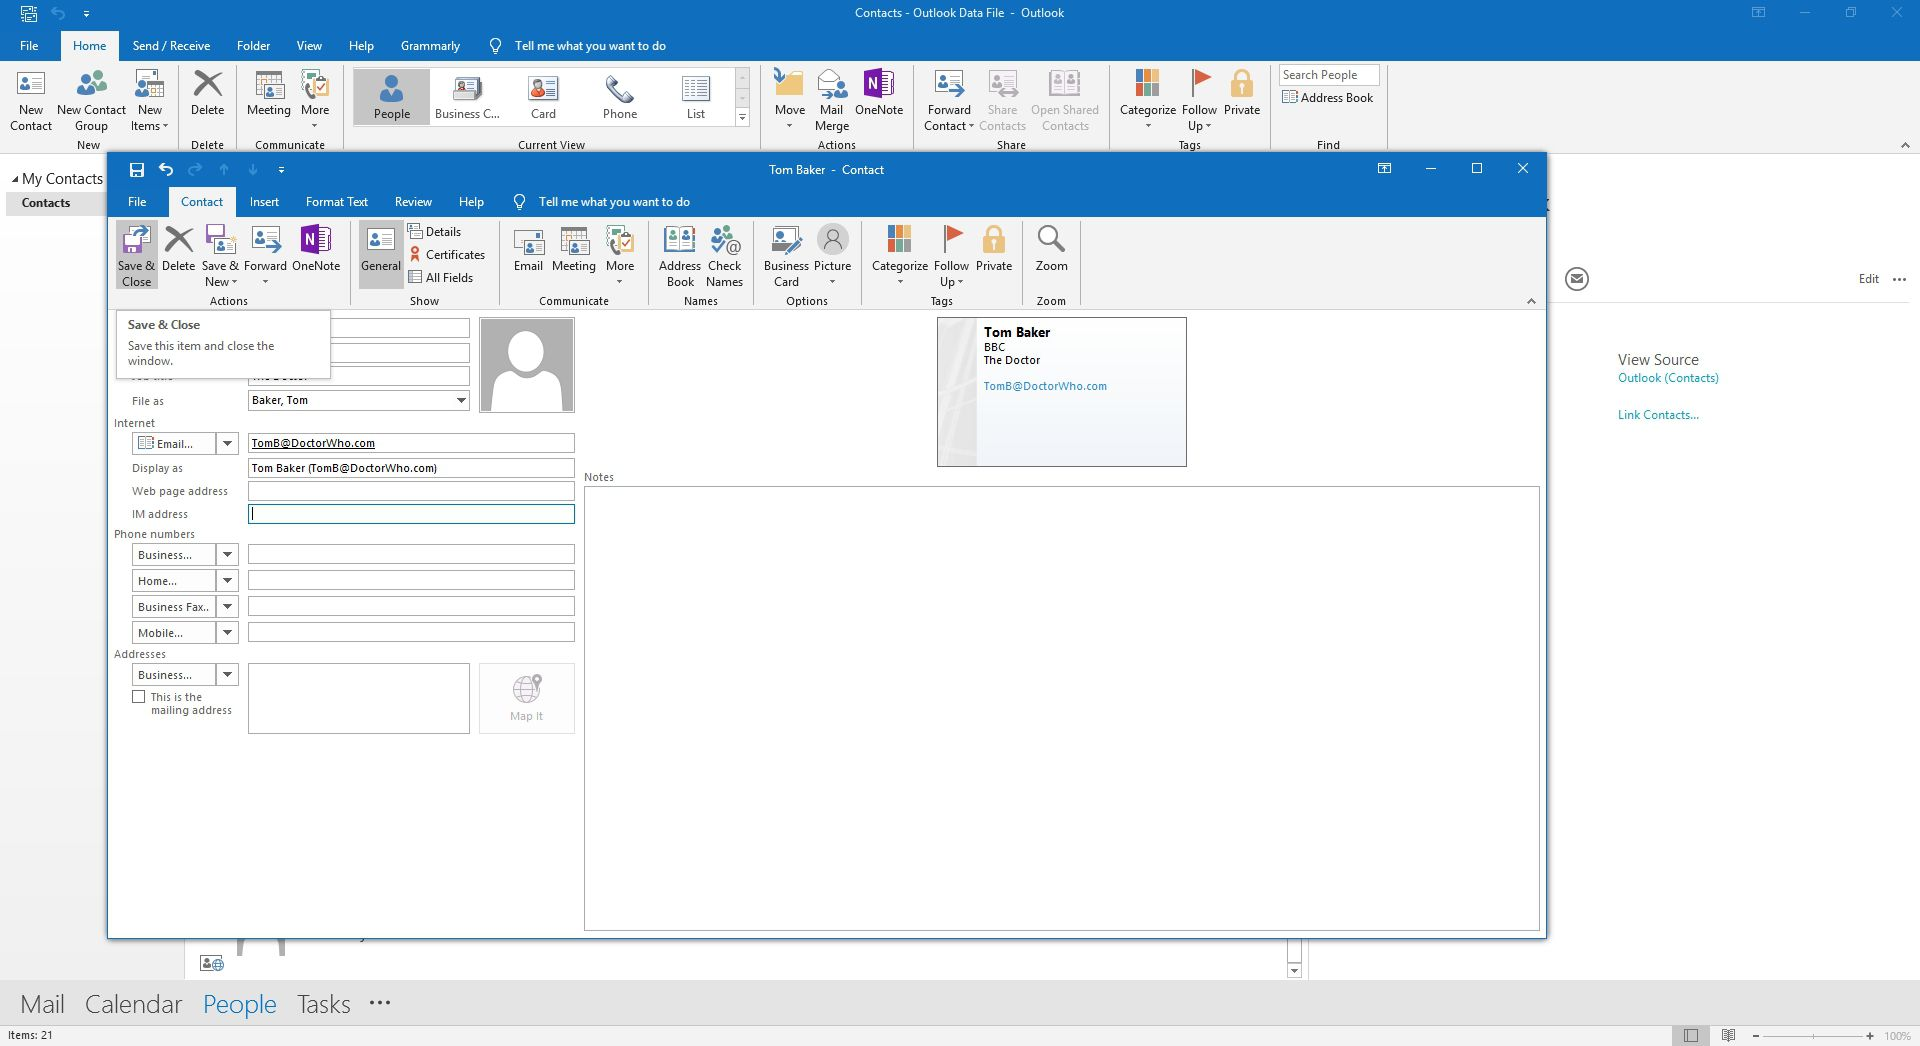 Saving a new contact card in Outlook